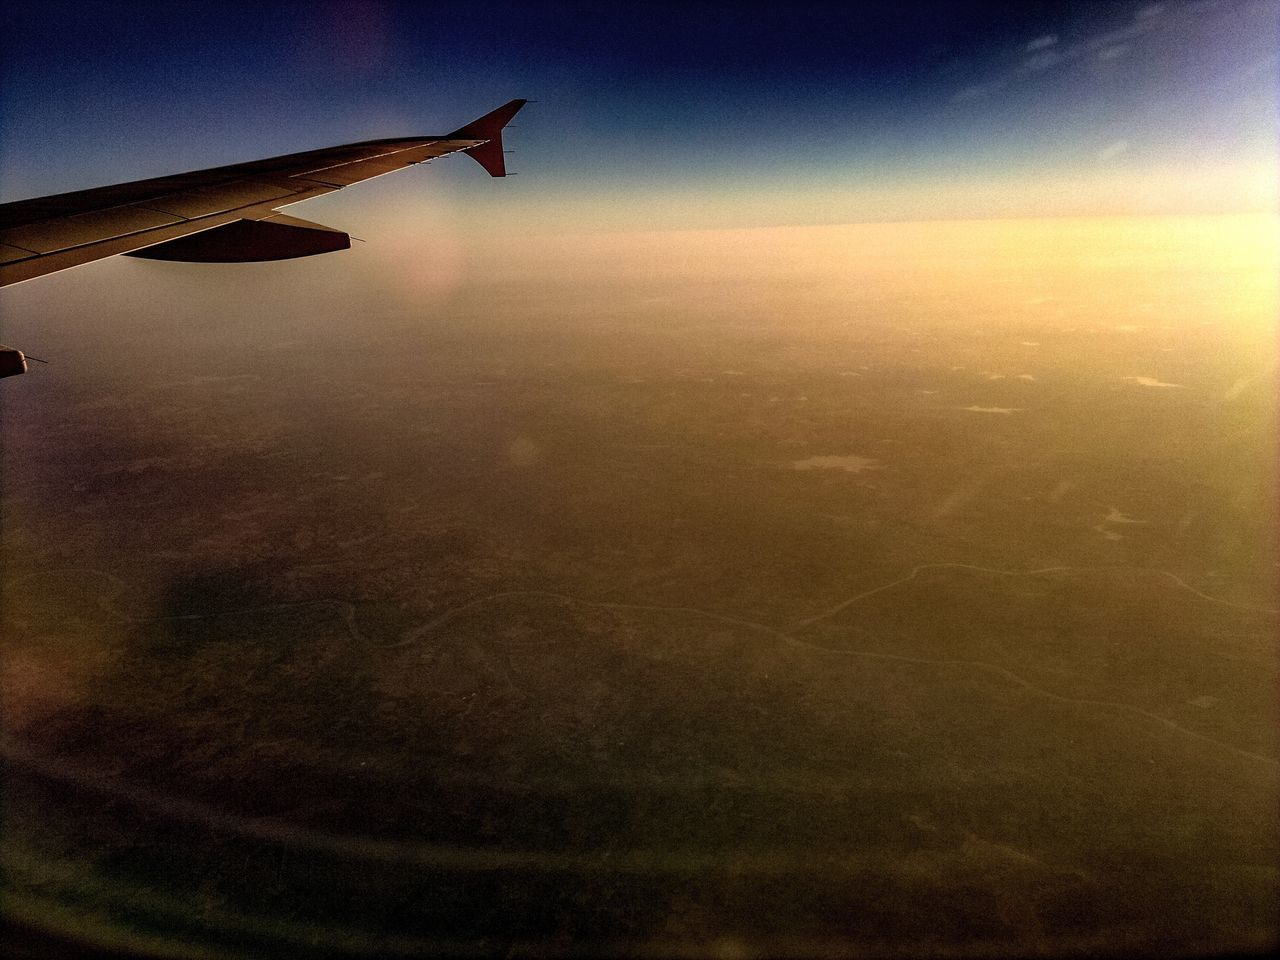 Airplane Aerial View Transportation Landscape Nature Airplane Wing Journey Scenics Flying Sky Mode Of Transport Aeroplane Beauty In Nature Aircraft Wing Aircraft Tranquility No People Tranquil Scene Sunset Air Vehicle